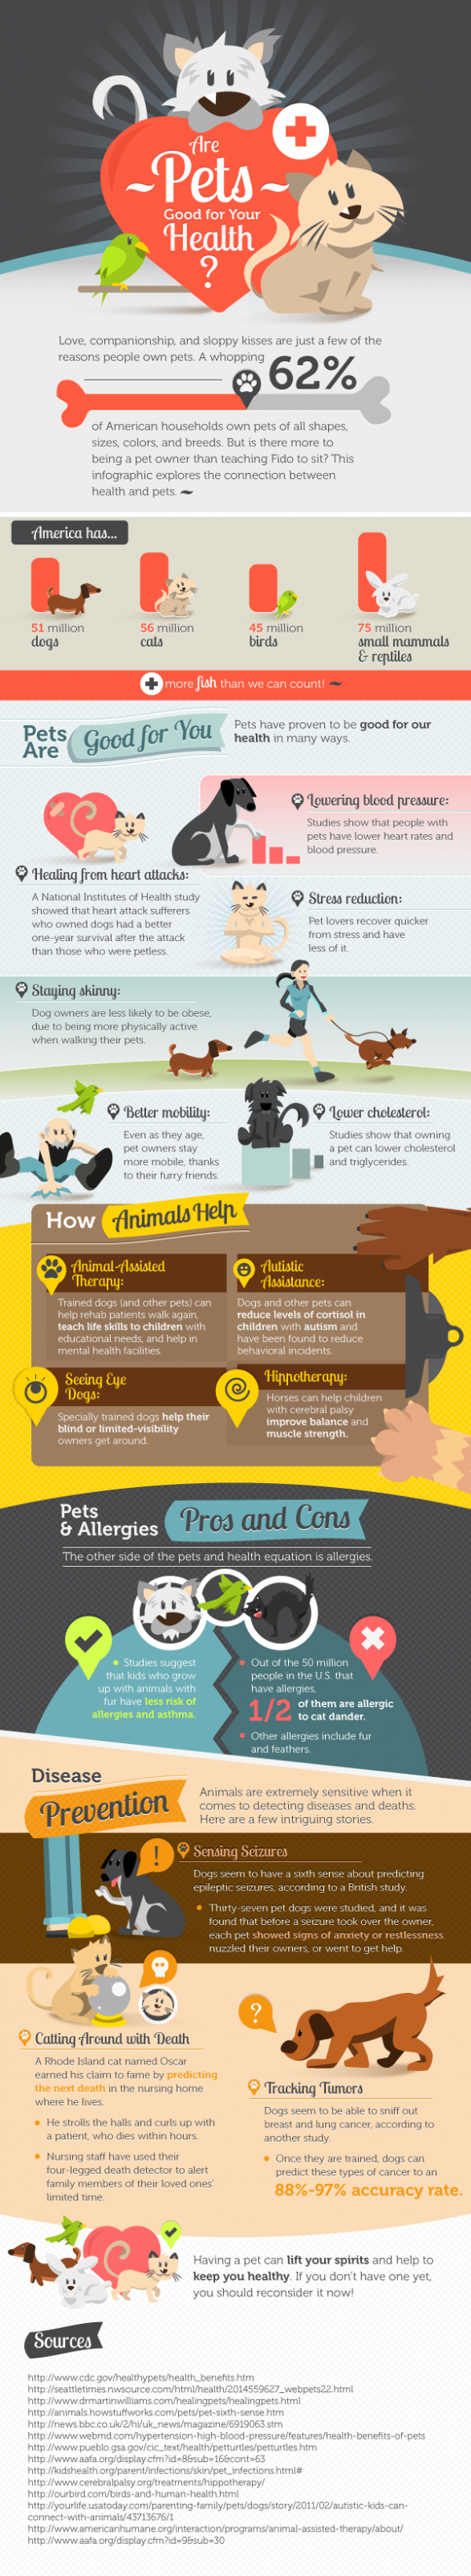 INFOGRAPHIC: Are Pets Good For Your Health?